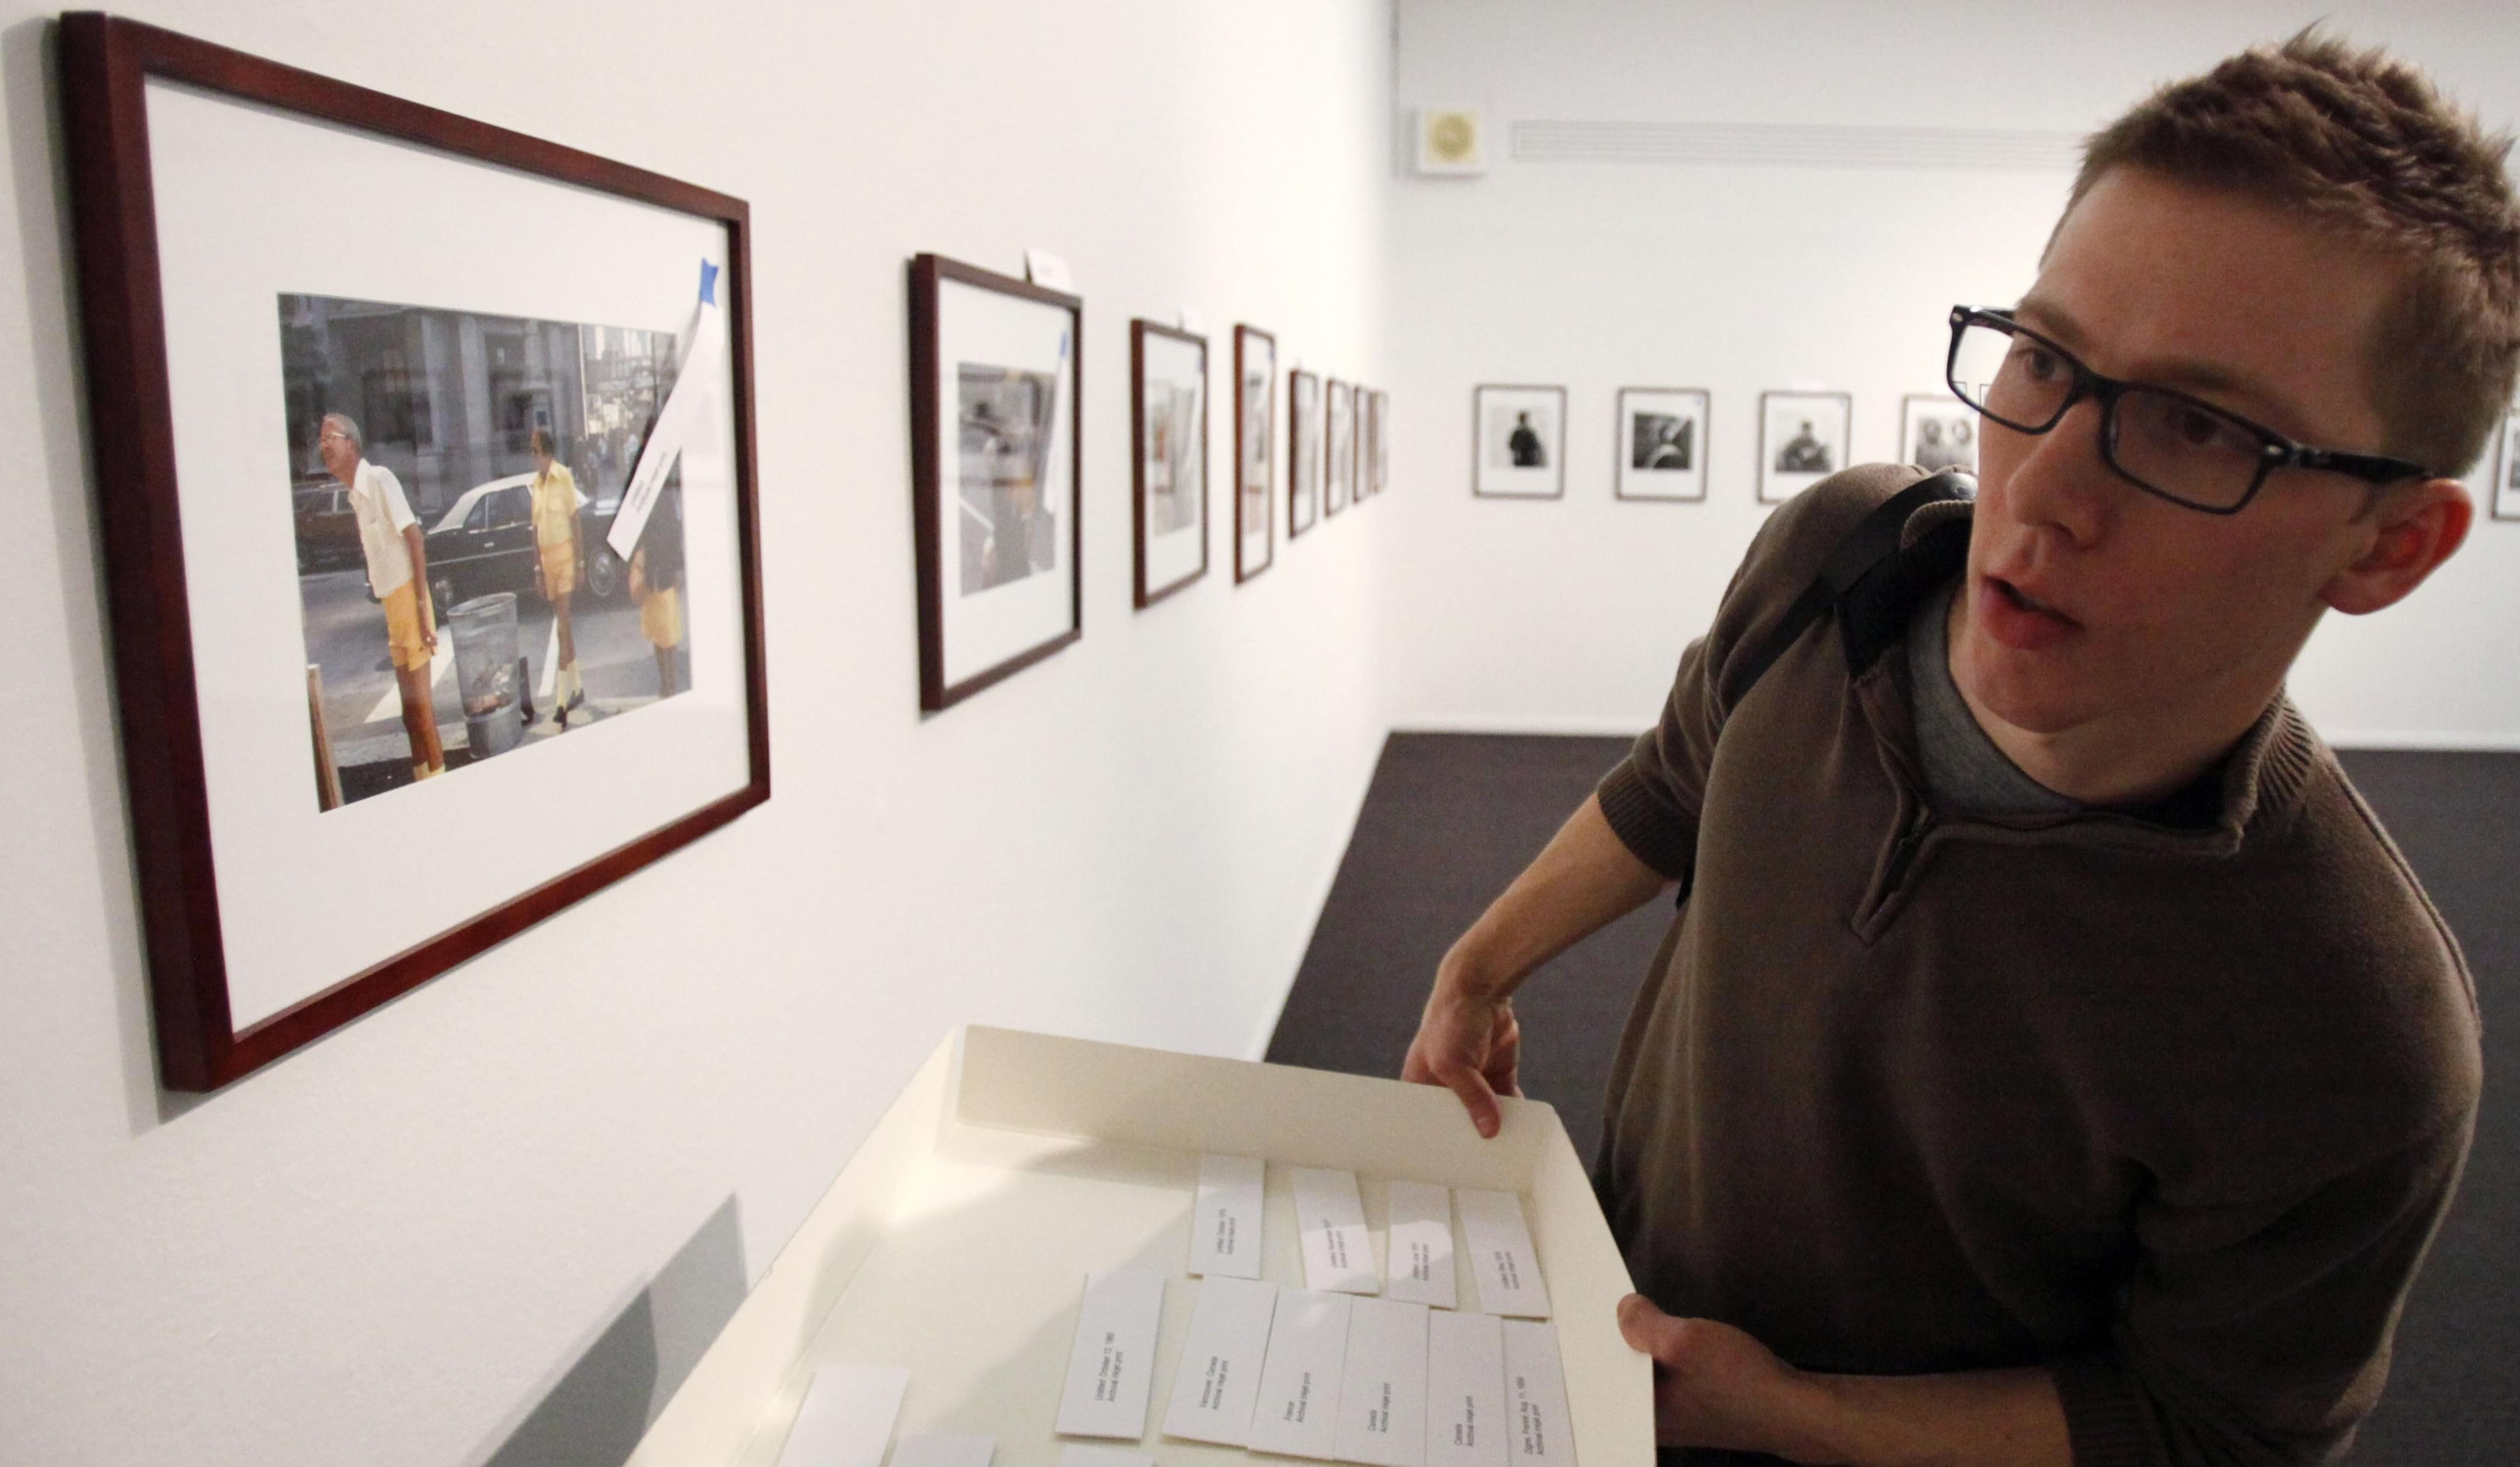 Collector John Maloof matches title tags with photographs by Vivian Maier for an exhibit in Chicago.